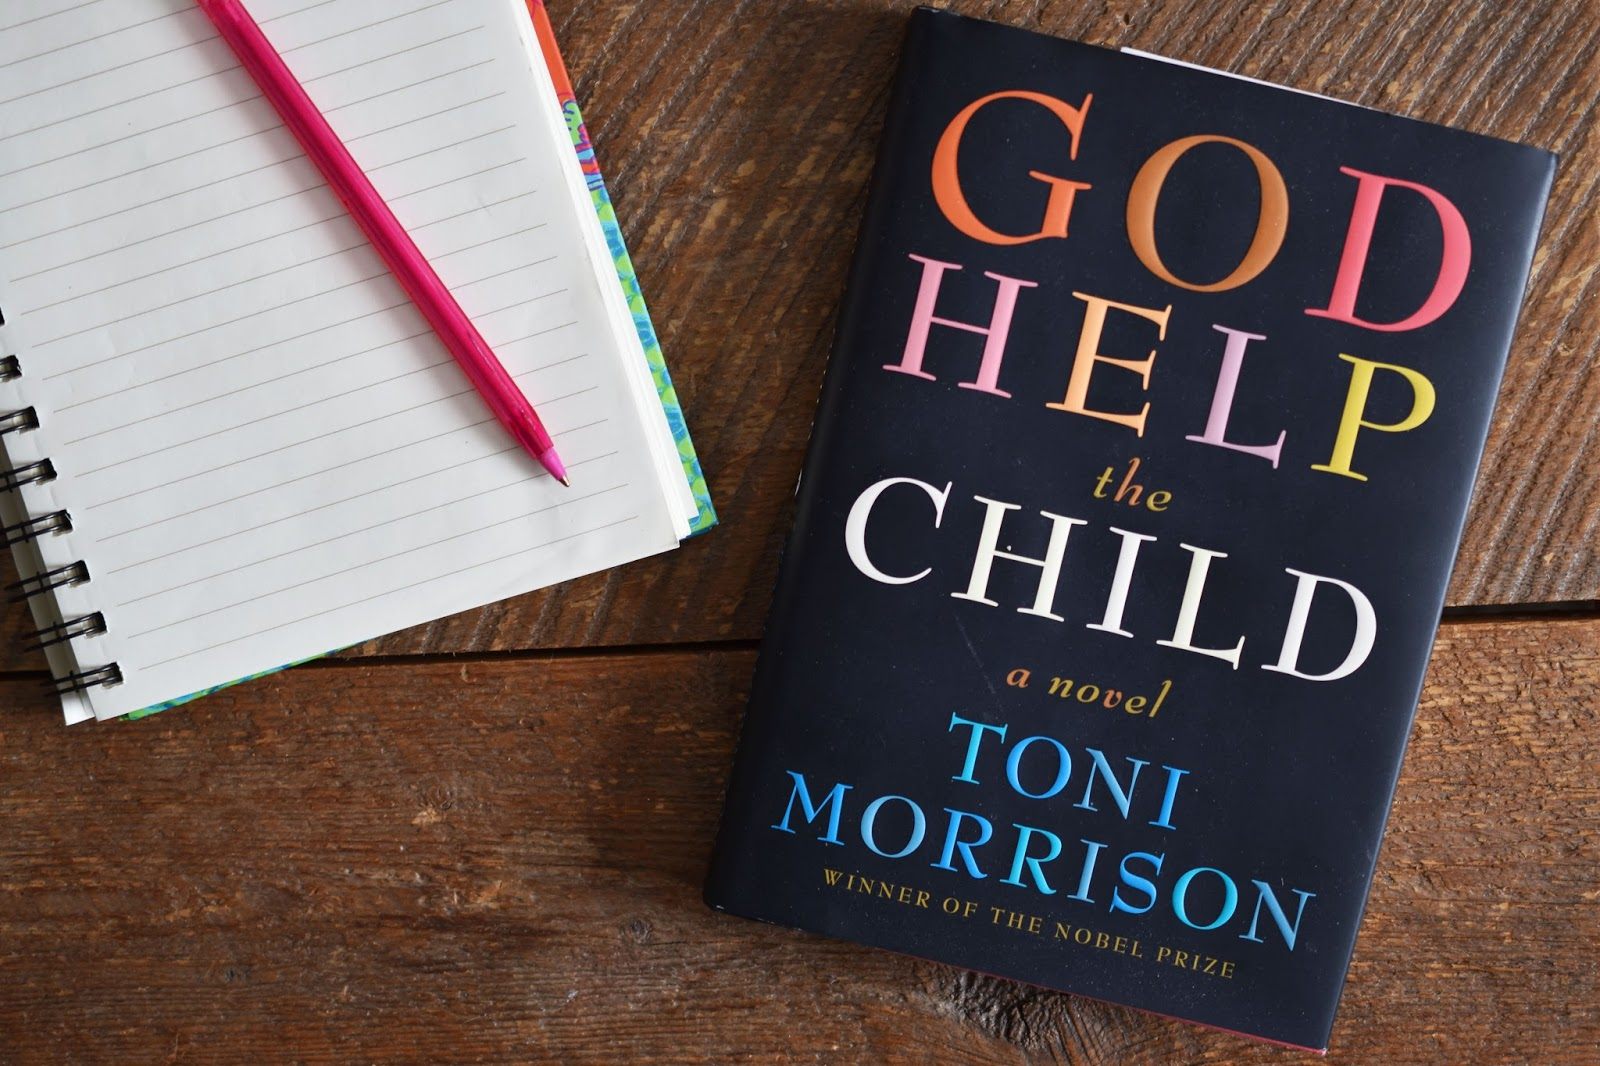 an analysis of the novel god help the child by toni morrison Interview: toni morrison, author of 'god help the child' it's not profound regret, morrison tells fresh air her latest novel, god help the child.